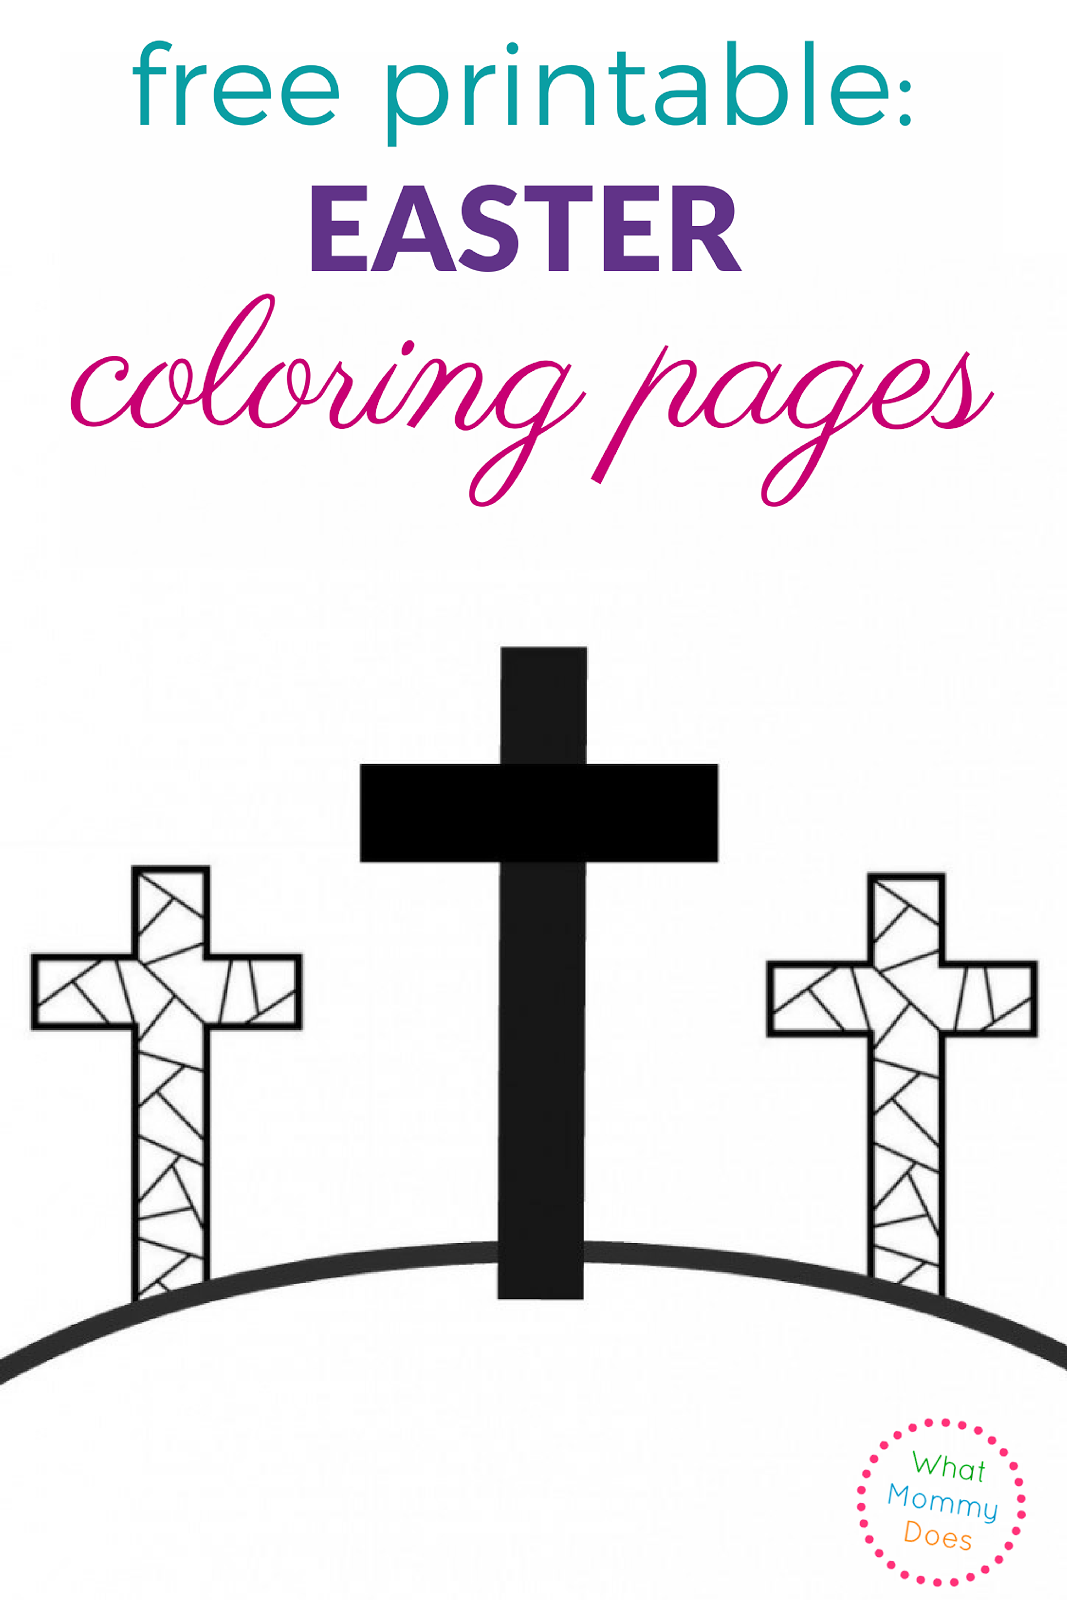 Religious Easter Coloring Pages. Christian Easter Coloring Pages ...